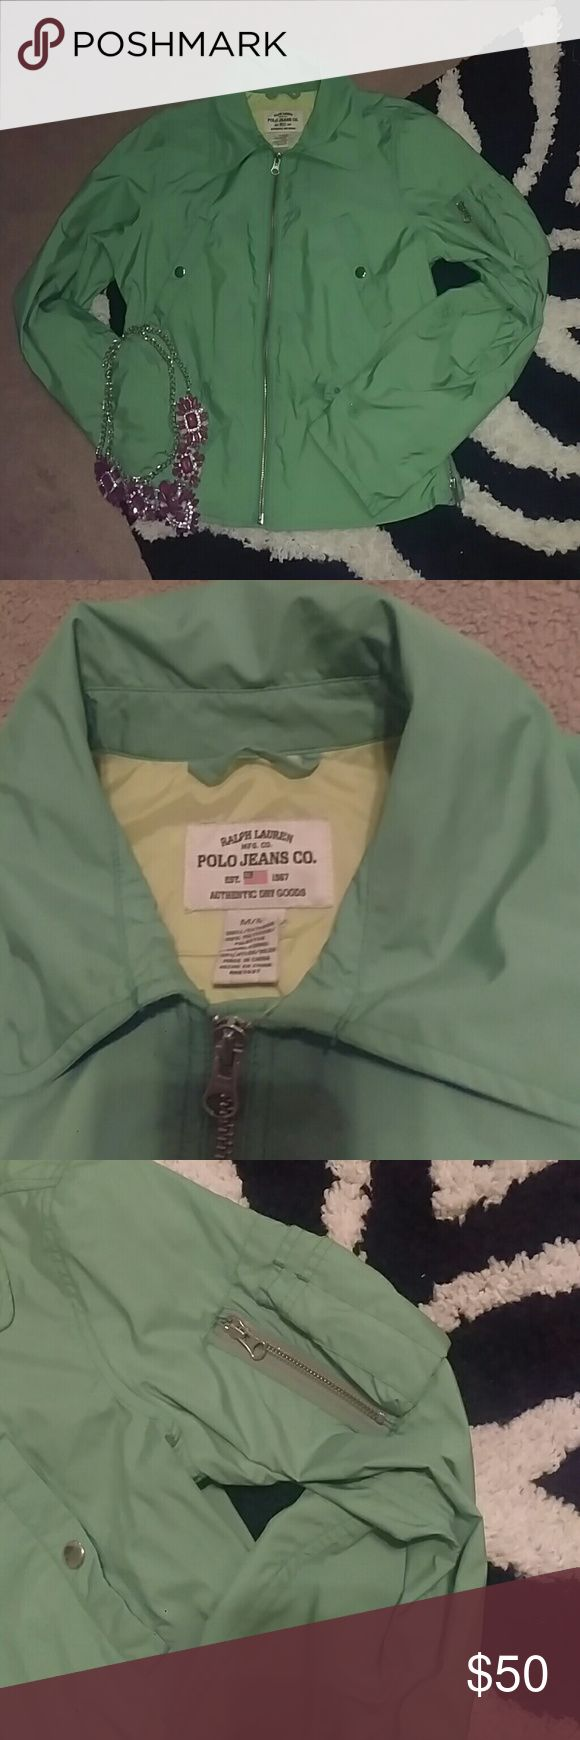 Like New Vintage Ralph Lauren Polo Jeans Co Jacket Like New Vintage Ralph Lauren Polo Jeans Co. Iconic branded style....Jacket  Mint green  Comes with hood that zips! Several decorative zippers on the side.   100% polyester  Sz. M  Please be sure to check out all my other items with prices you won't find anywhere else. Ralph Lauren Jackets & Coats